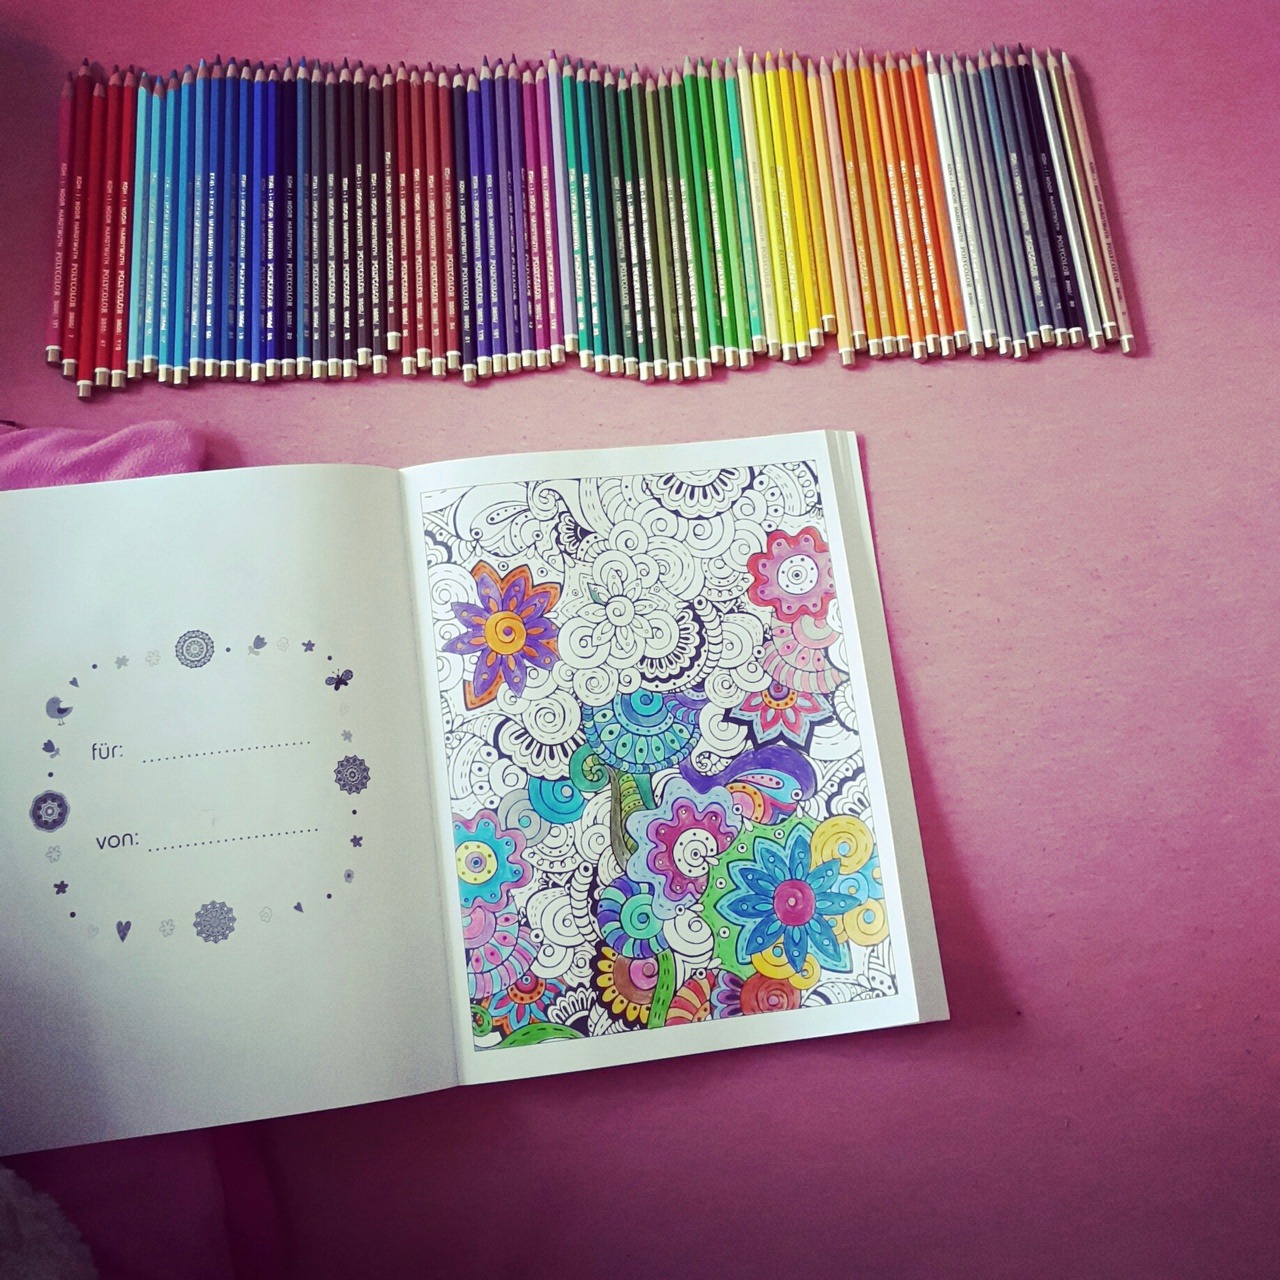 girly stuff, colorful, polycolor, art, drawing